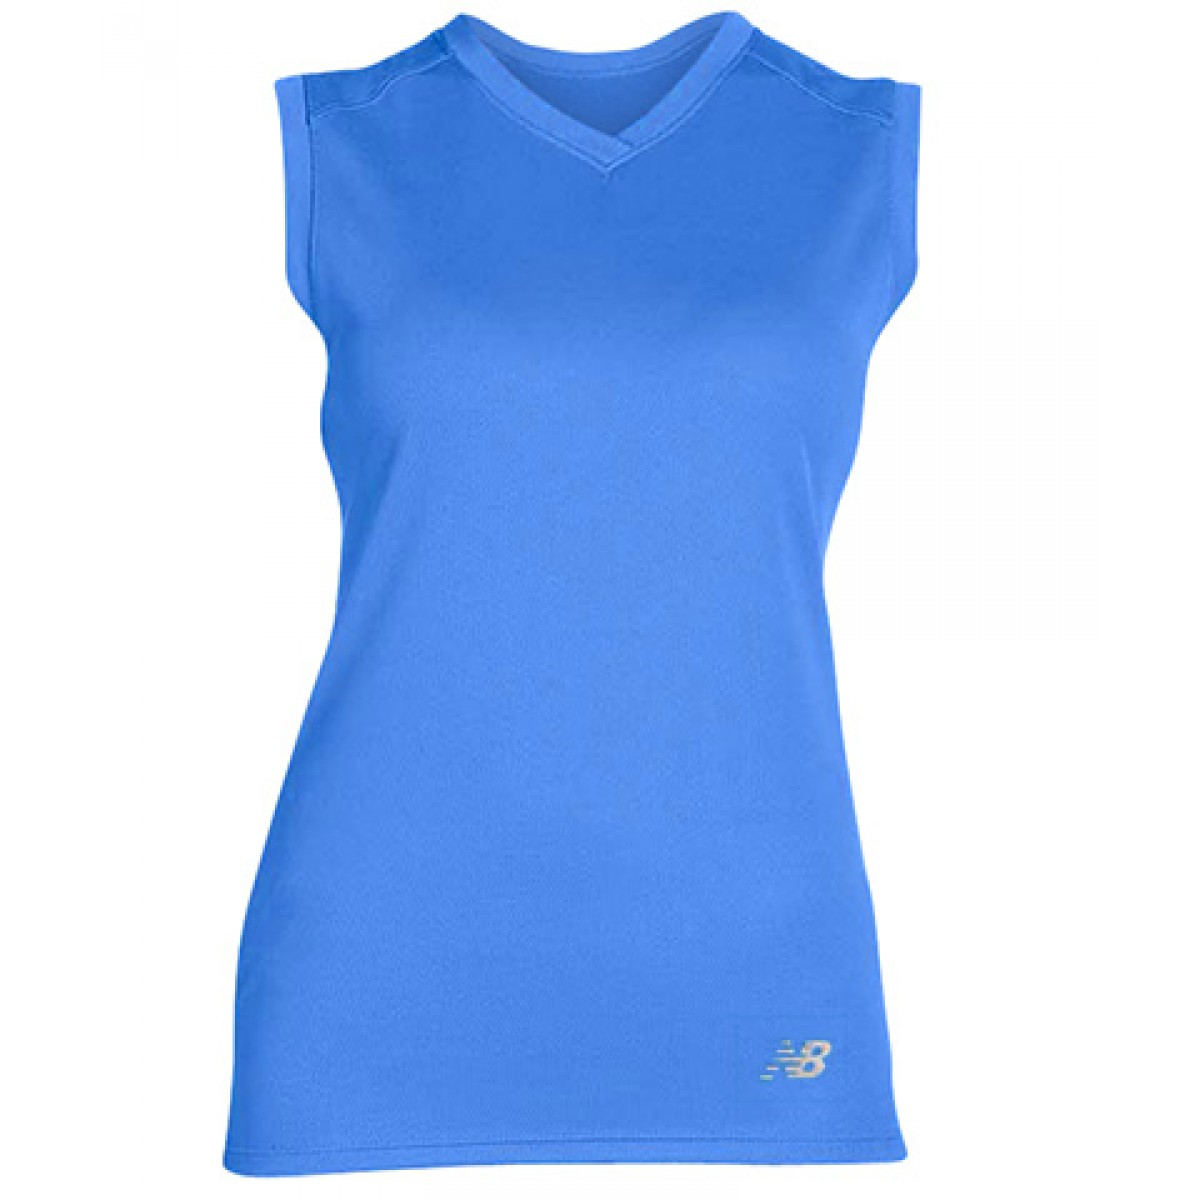 Ladies' Athletic V-Neck Performance T-Shirt-Blue-L